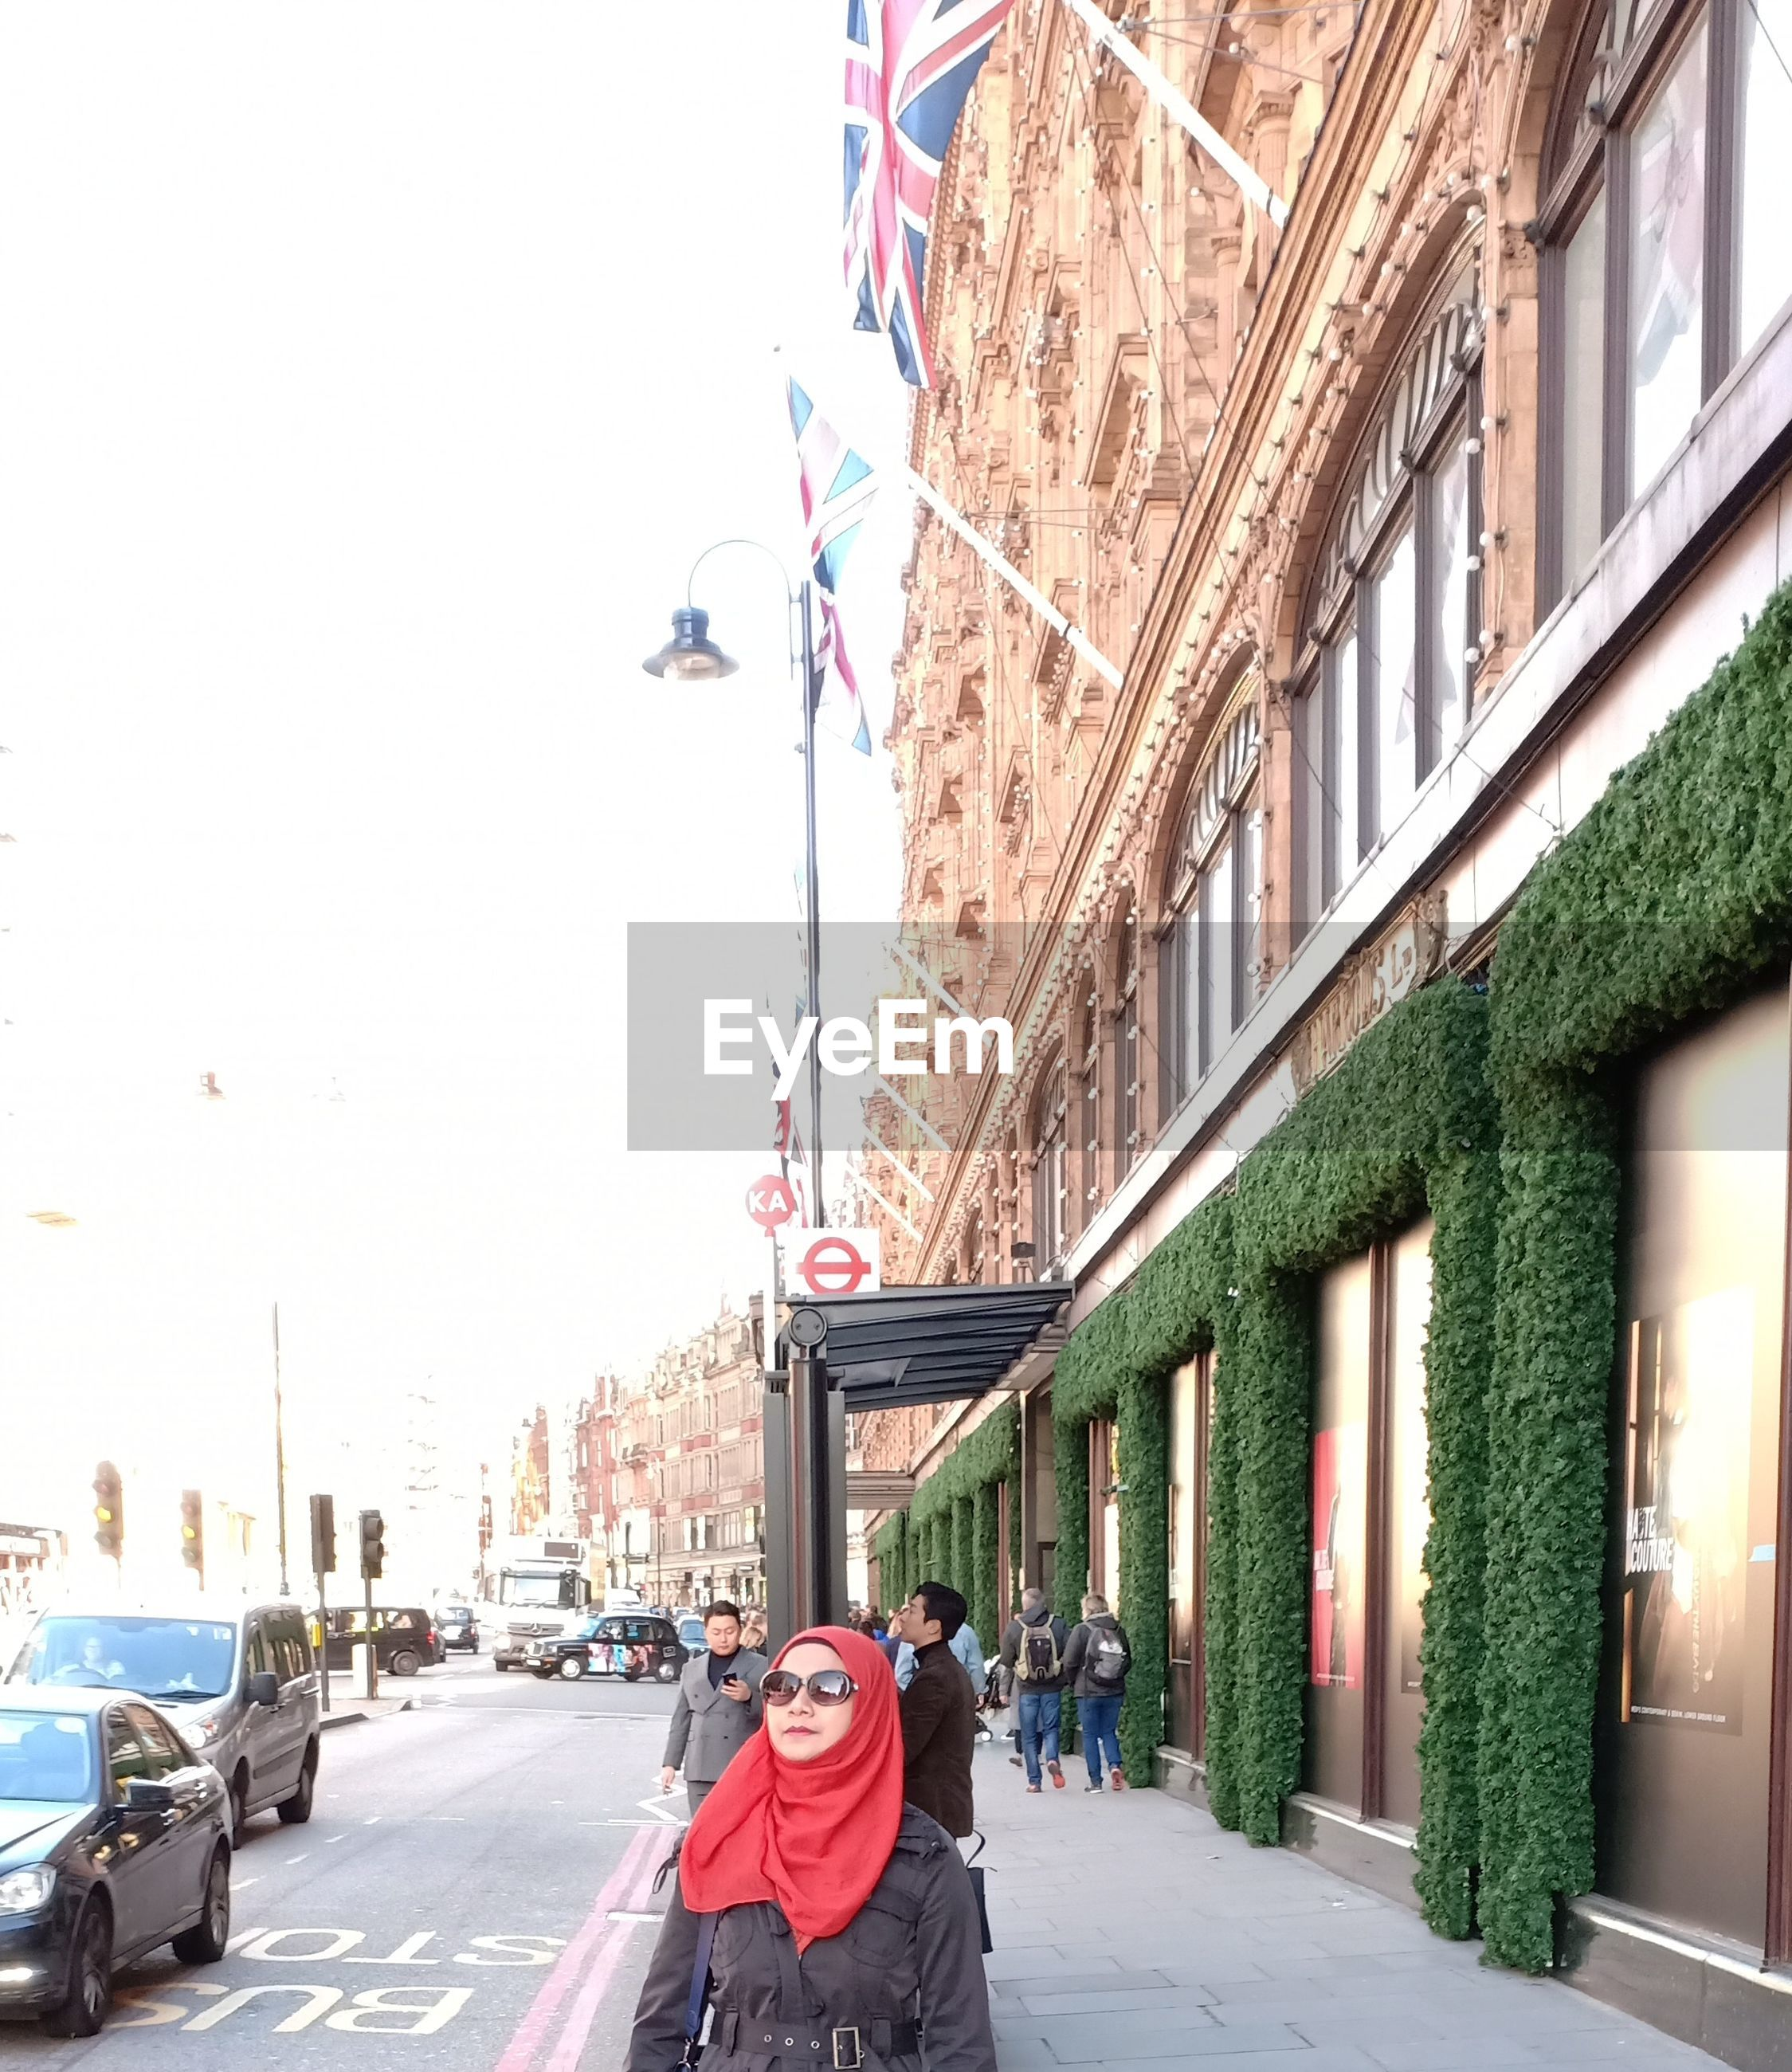 Mature woman wearing sunglasses while standing on city street amidst buildings against sky